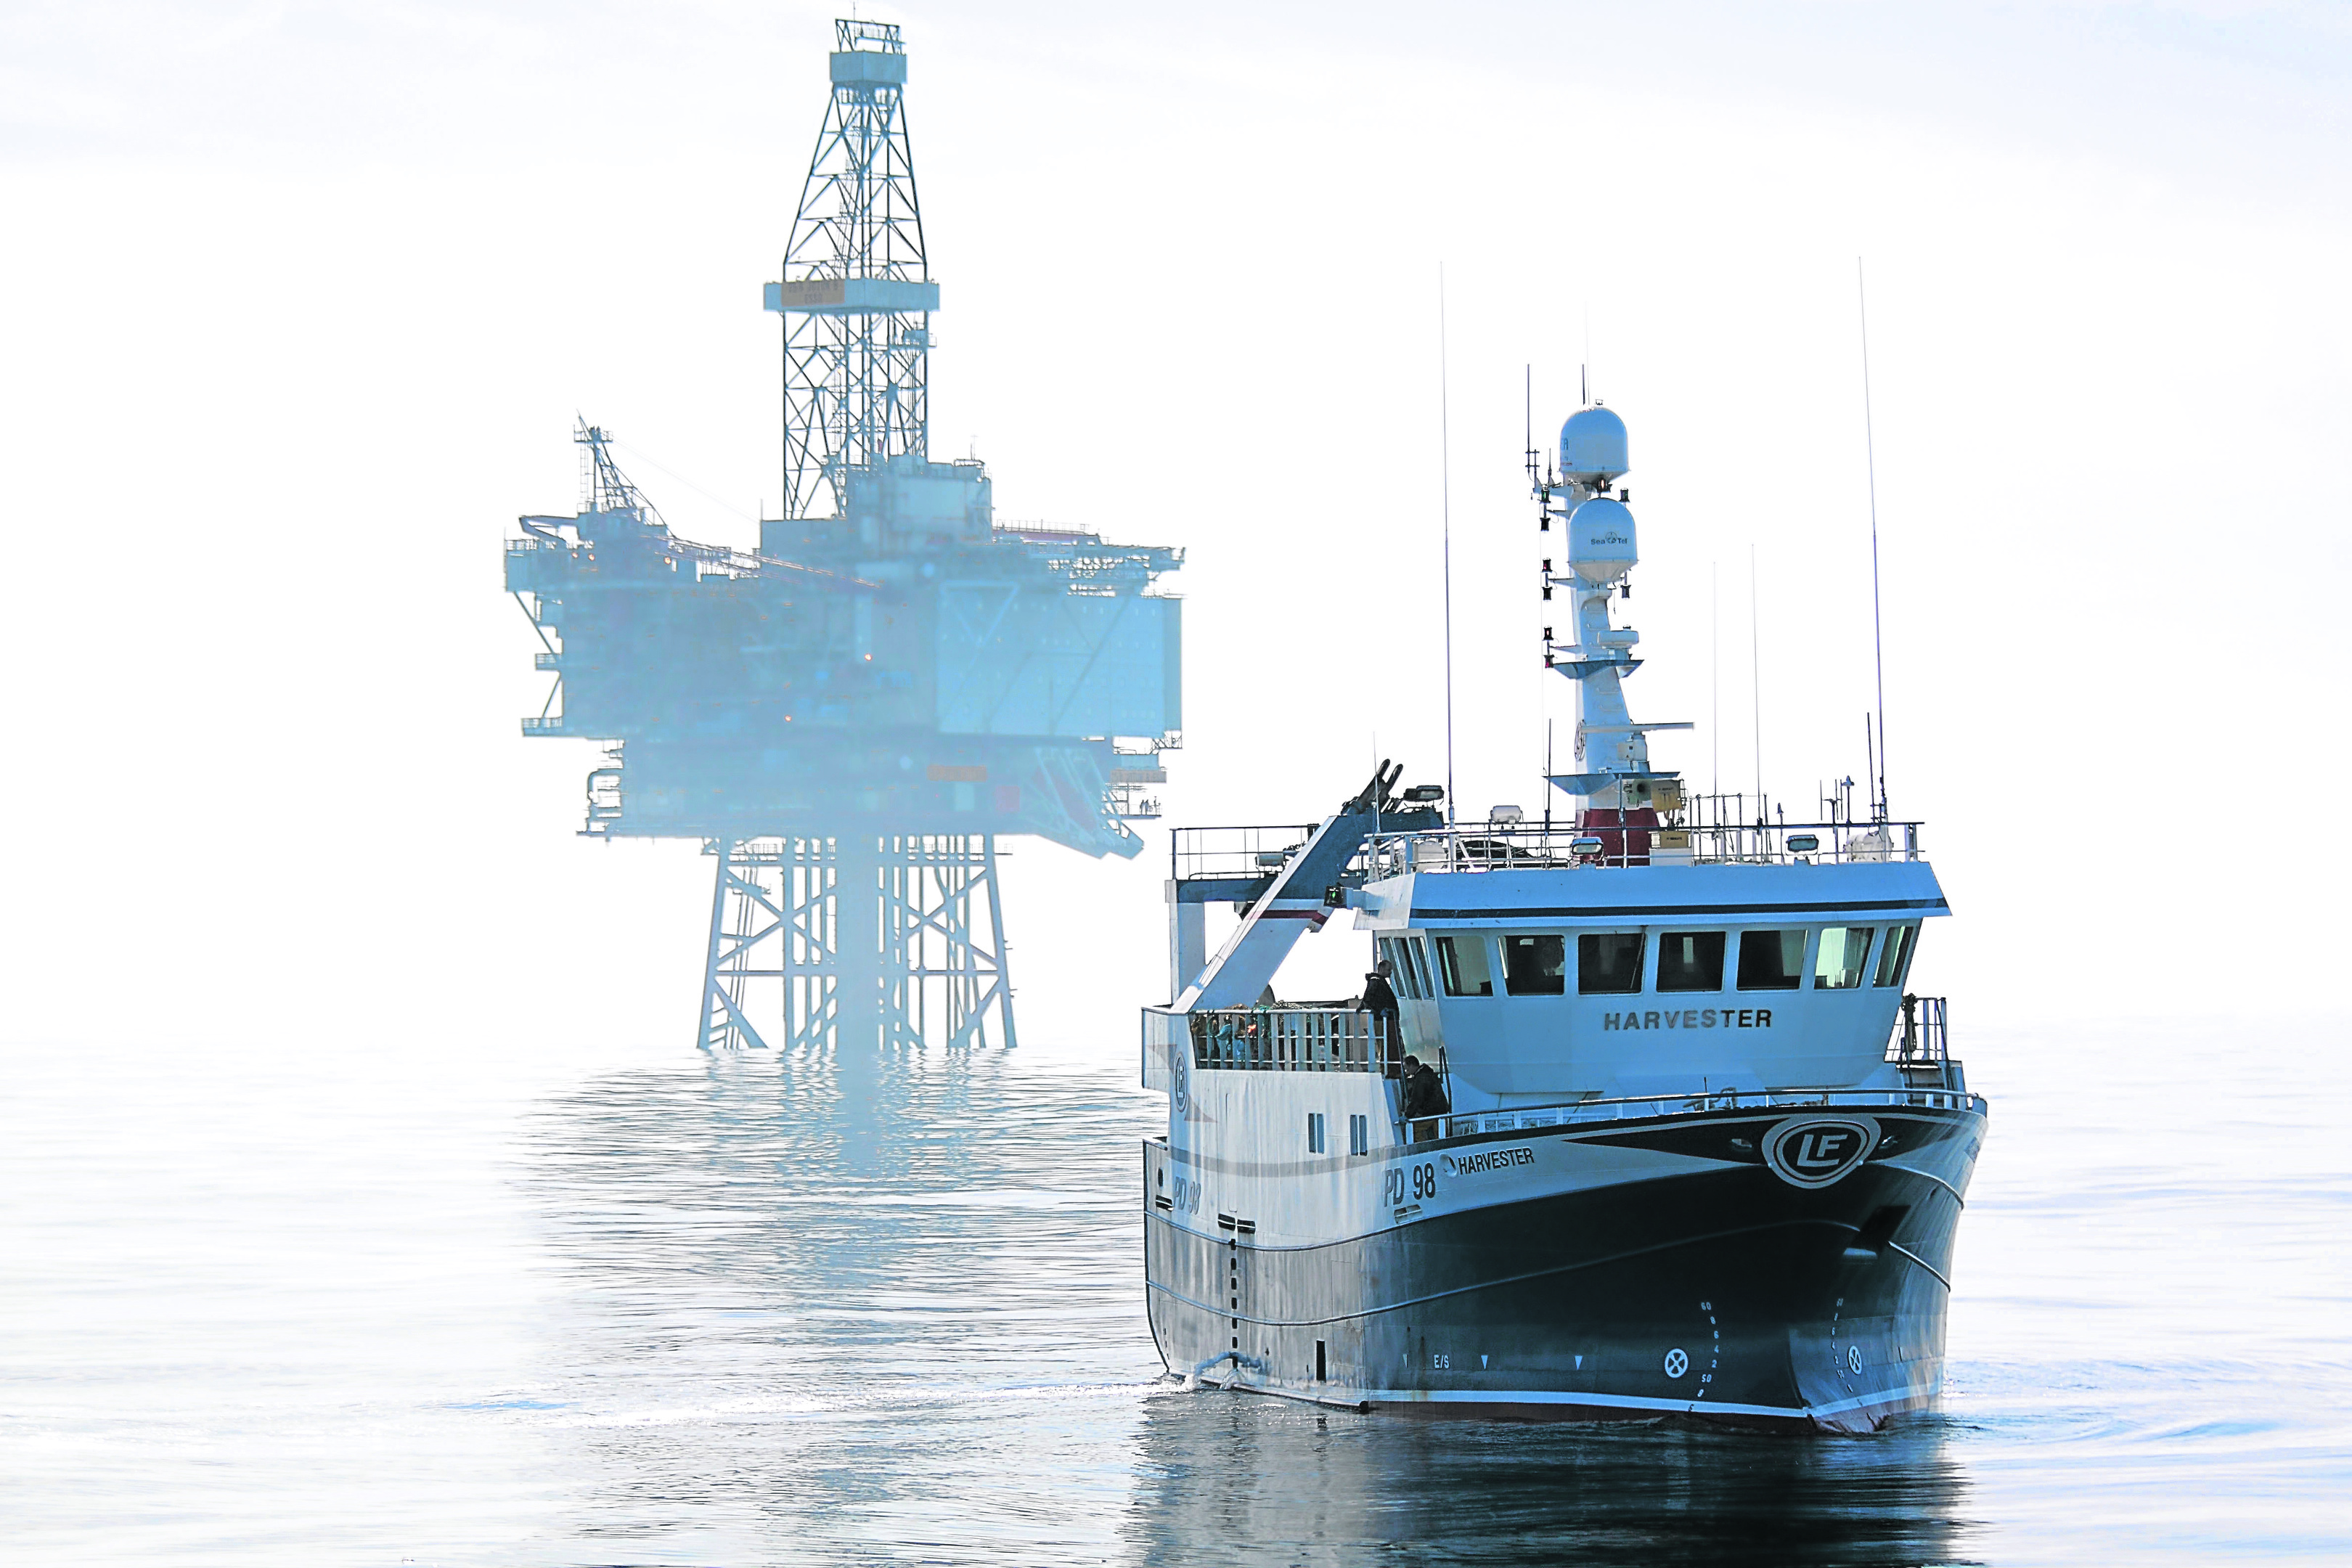 E45R11 Fishing vessel Harvester and the Jotun B oil production platform. North Sea May 2010